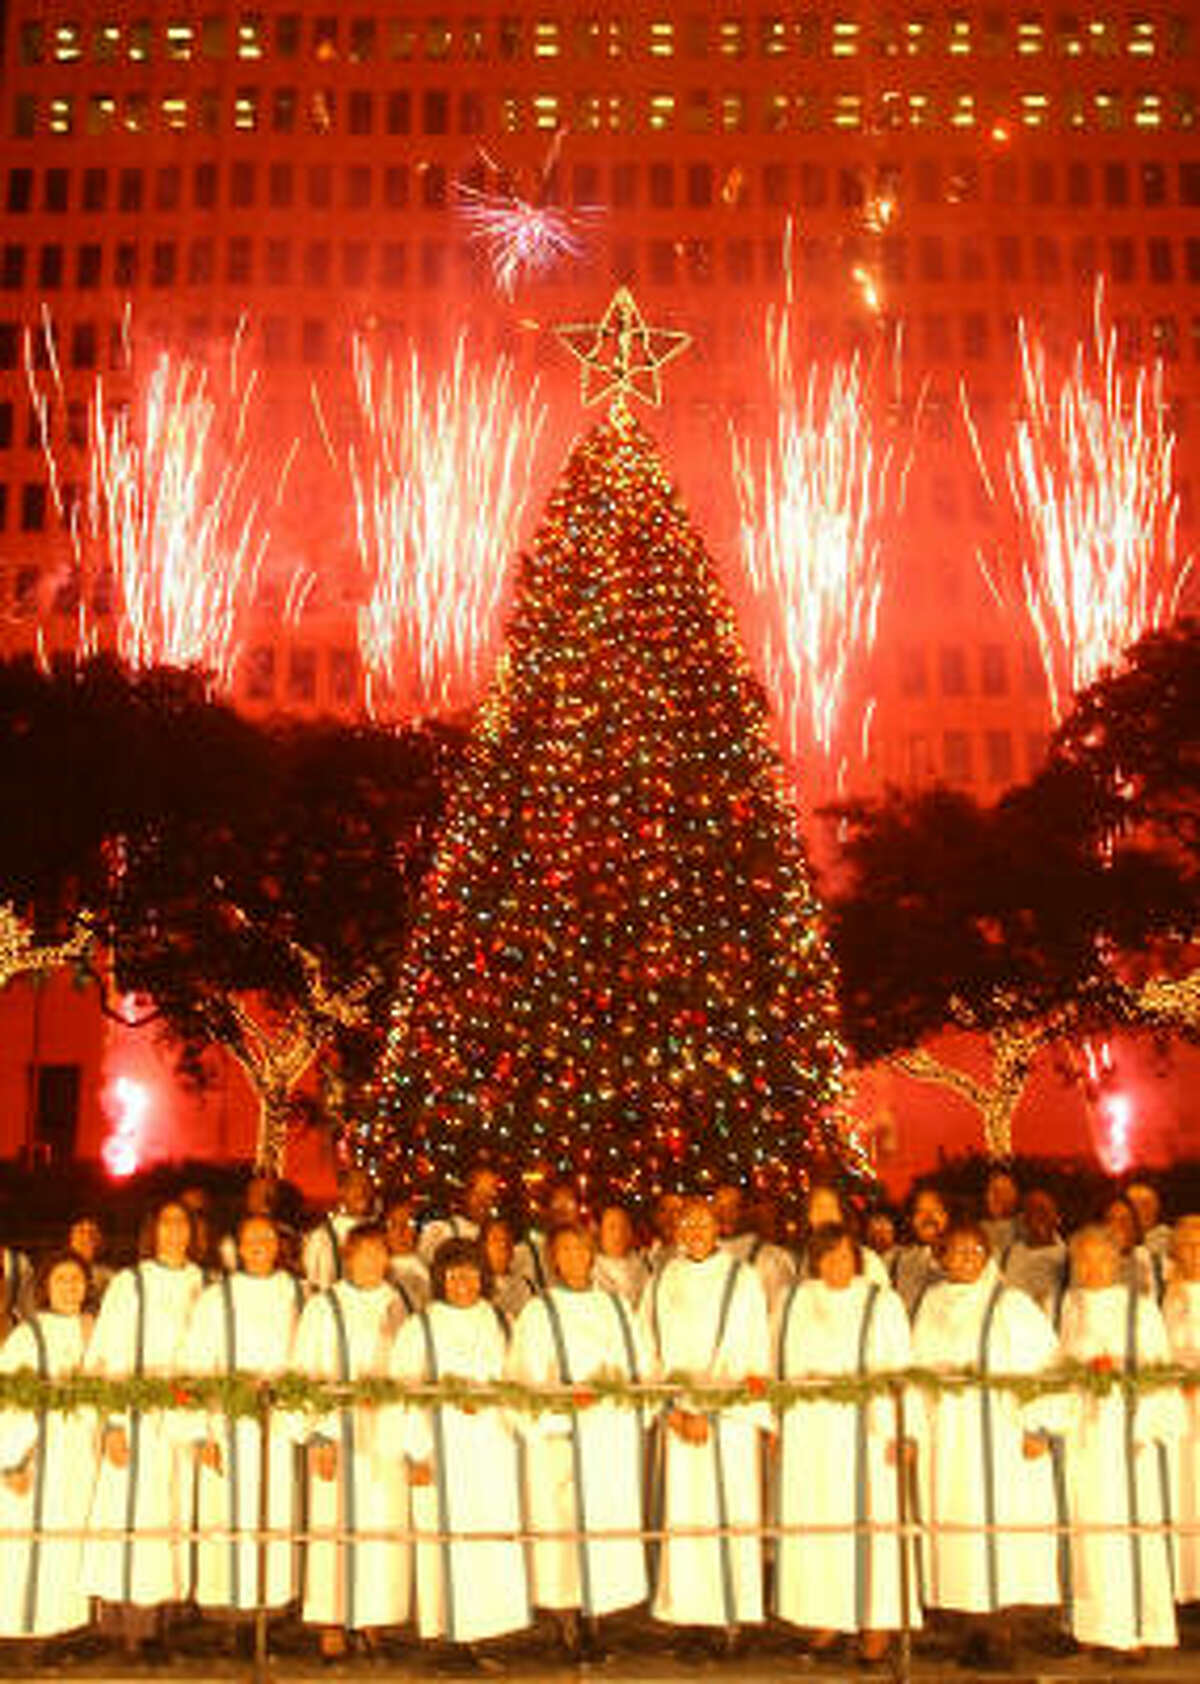 Members of the Mount Corinth Missionary Baptist Church performed the Hallelujah chorus as fireworks illuminated downtown during Mayor Lee P. Brown's Houston Holiday Celebration at City Hall in 2002.